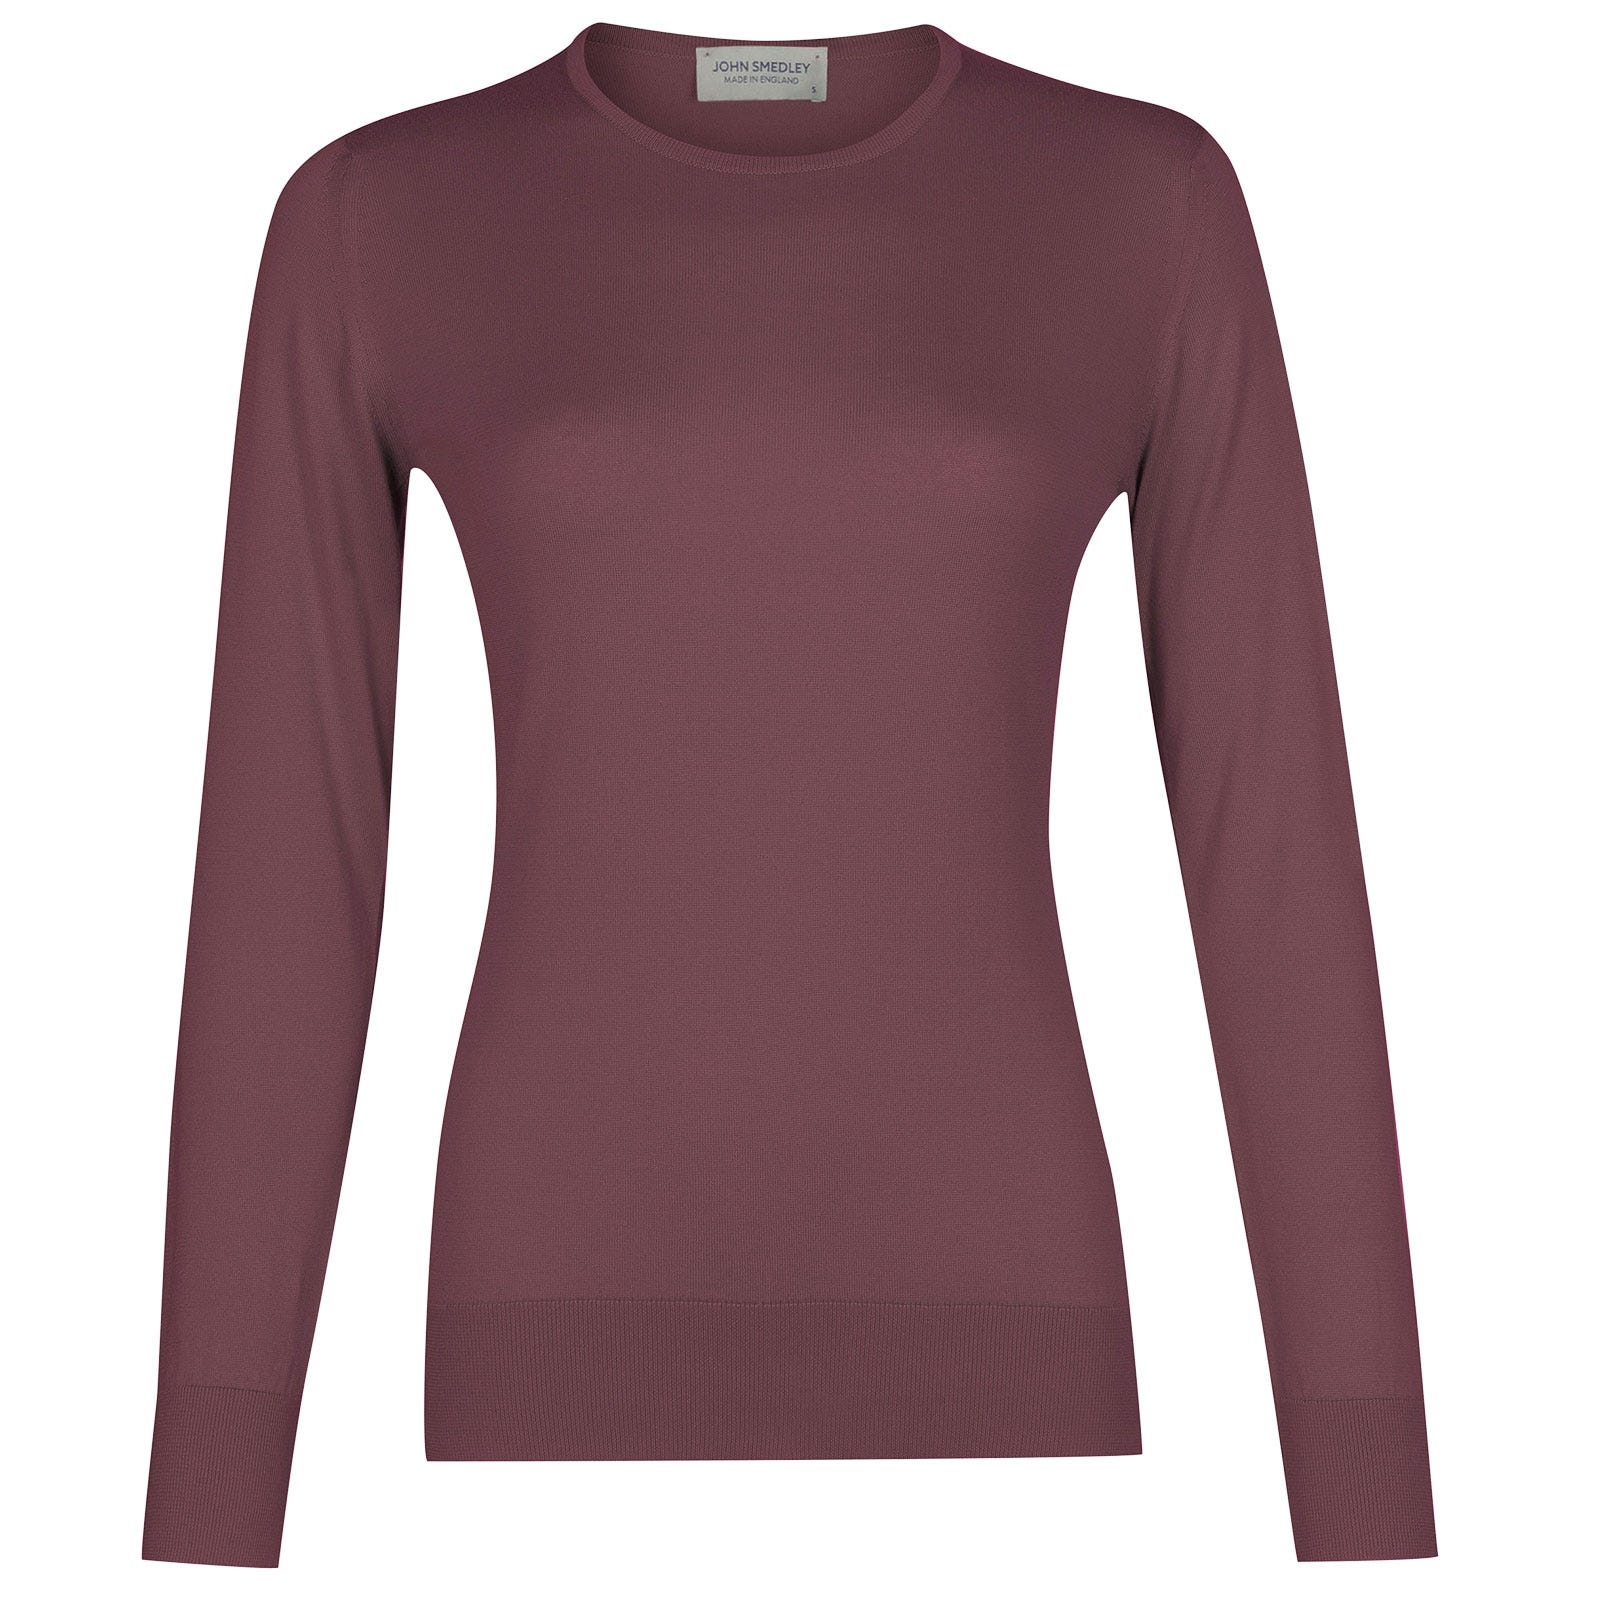 John Smedley Paddington in Brassica Purple Sweater-XLG